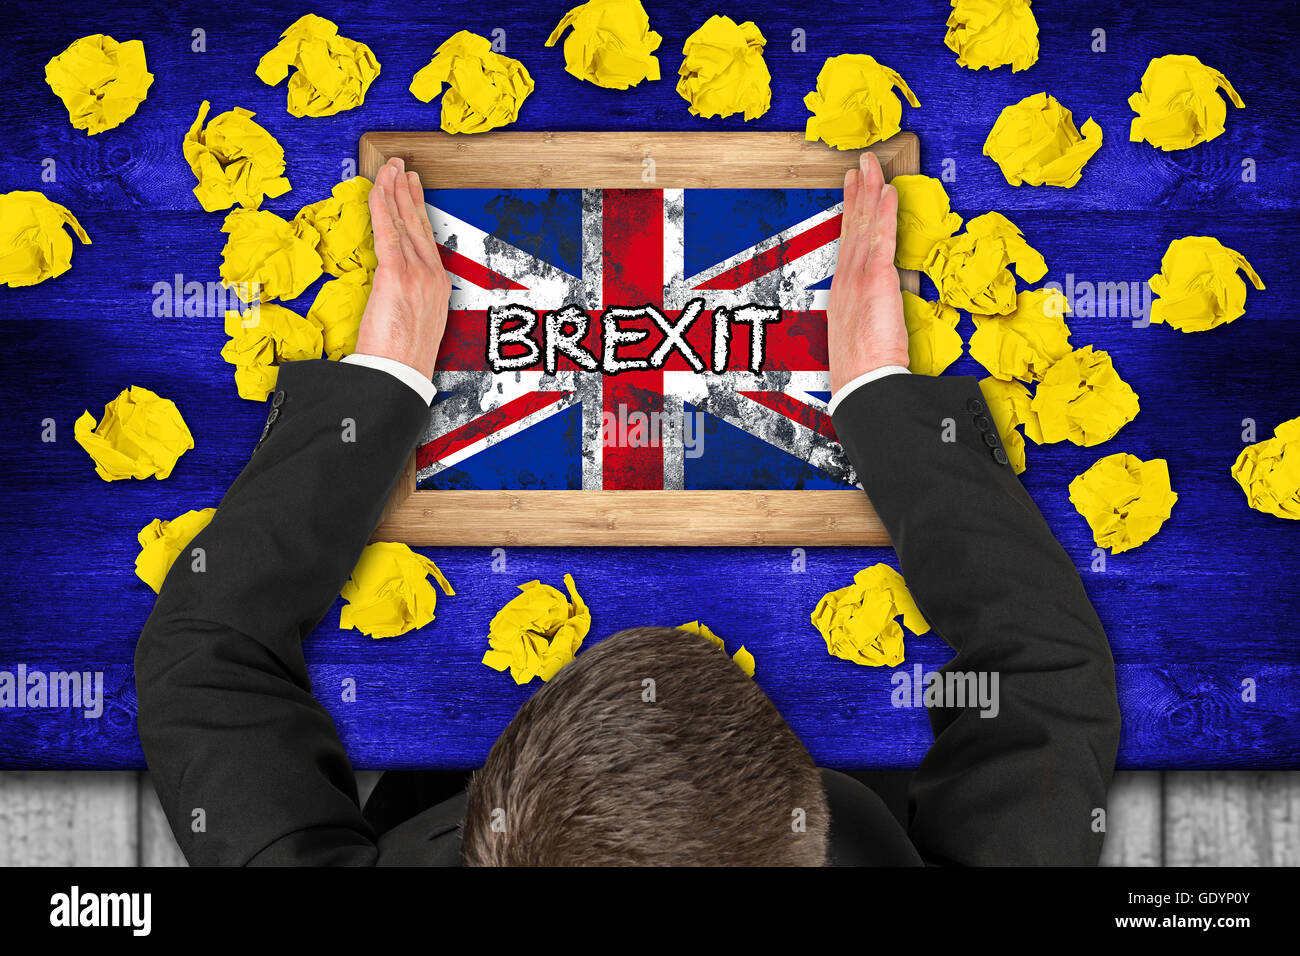 brexit concept on blue table with yellow paper snarls  politican and brexit chalkboard - Stock Image